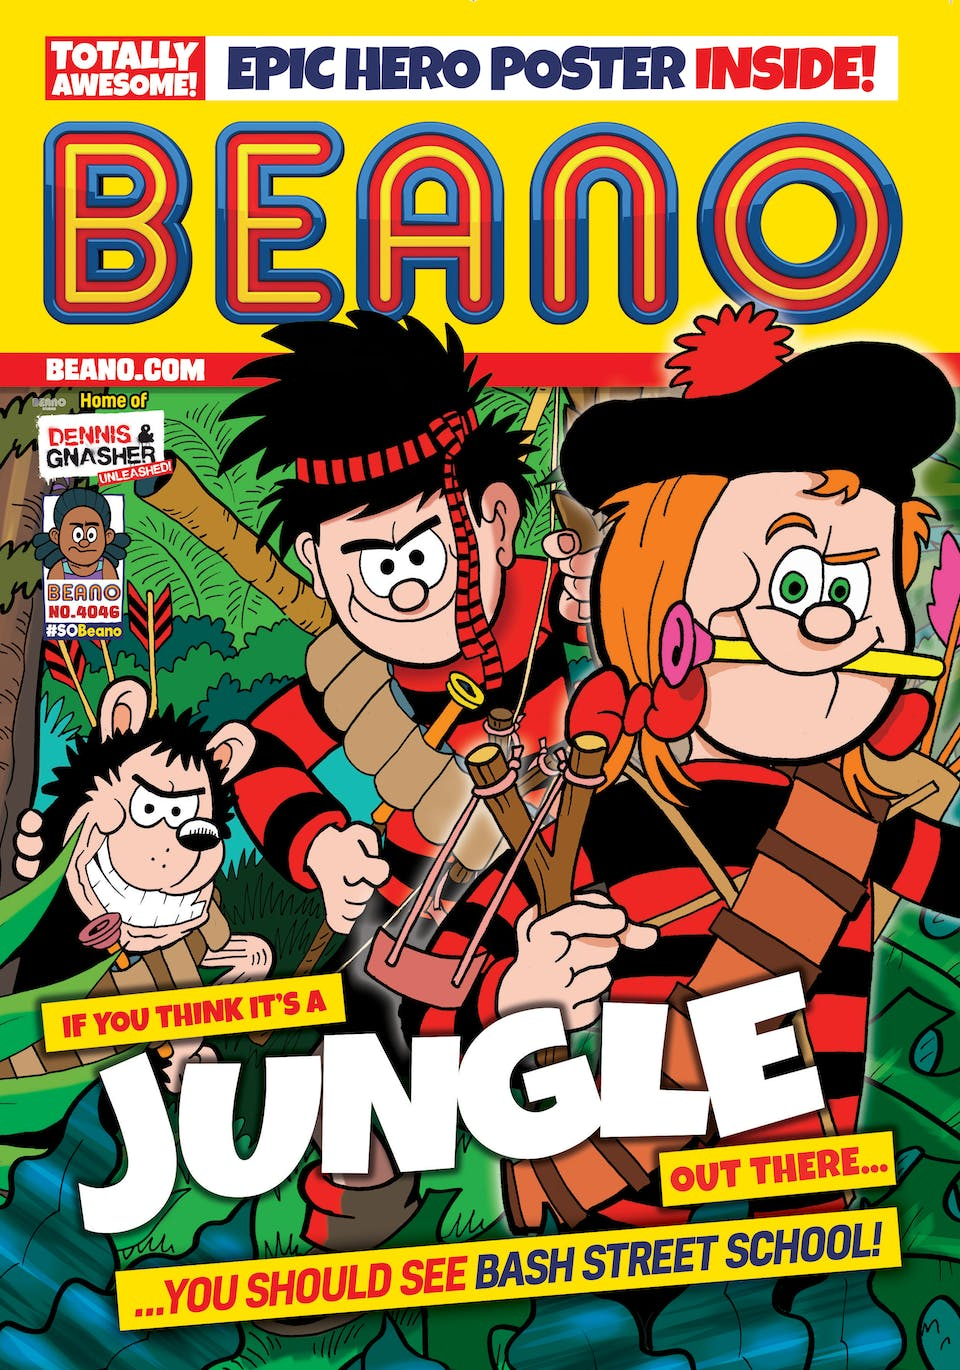 Inside Beano Issue 4046 - Welcome To The Jungle!